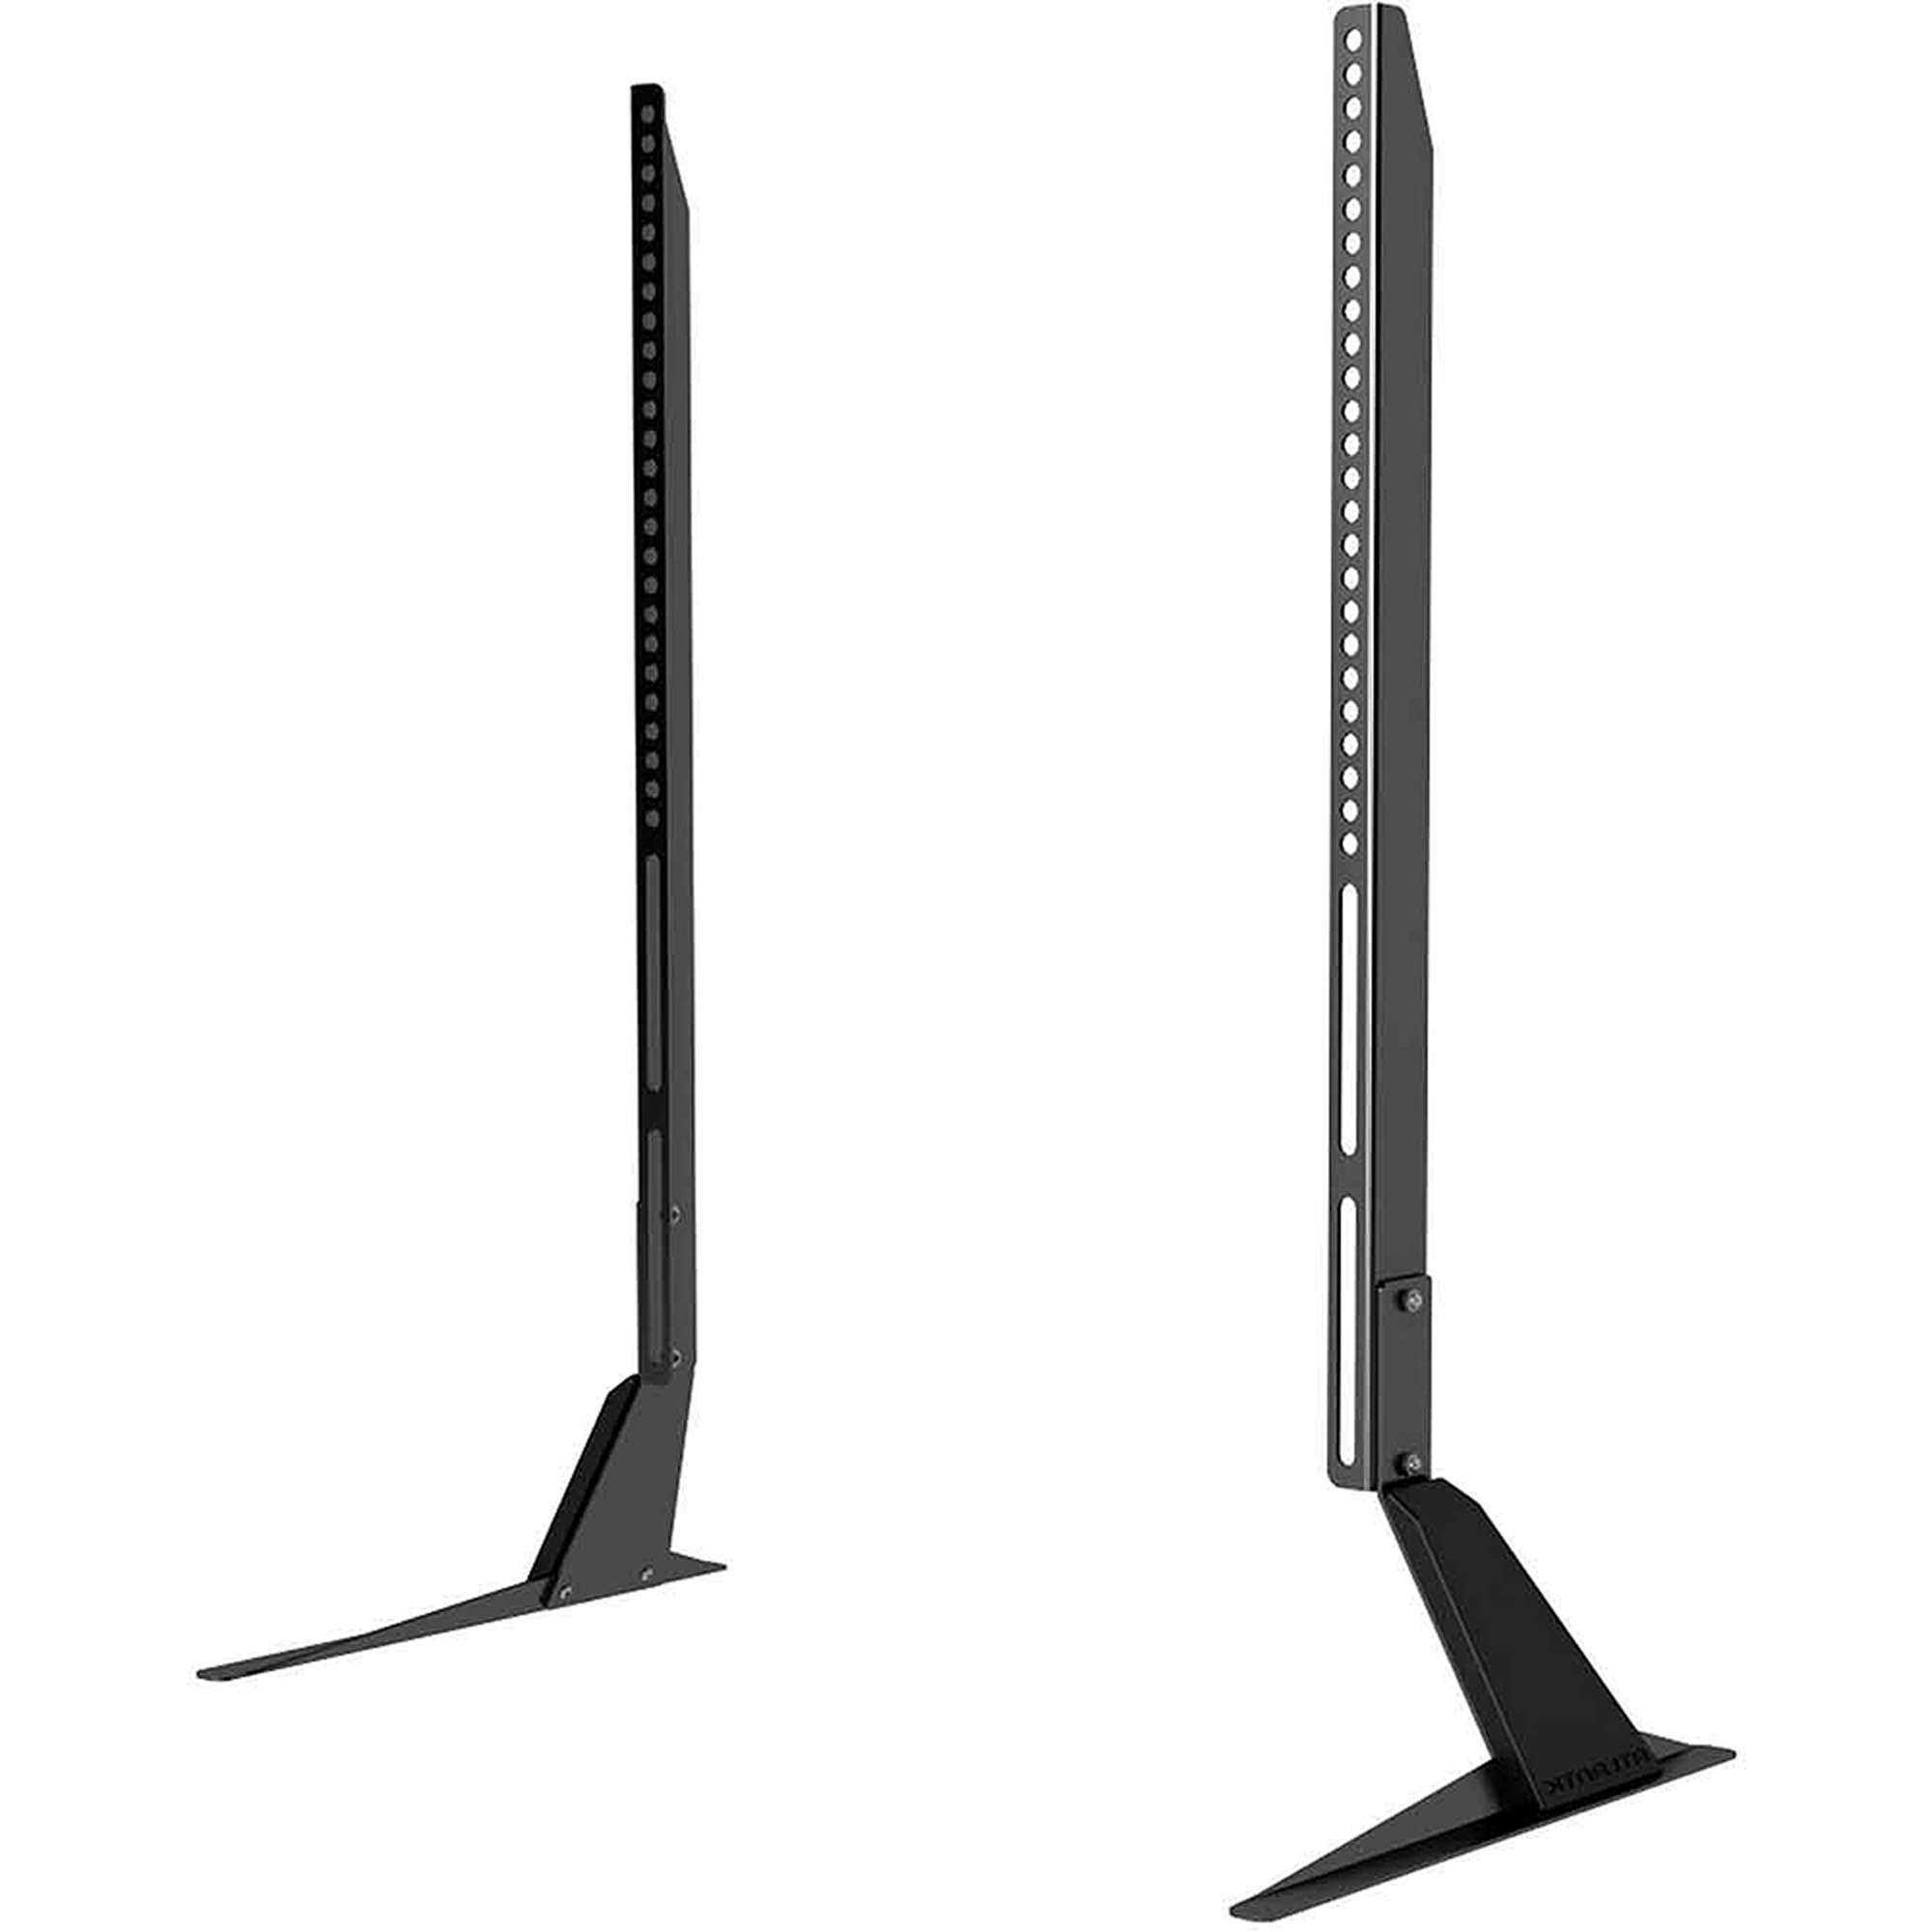 Fitueyes Universal Tabletop Tv Stand Base For 37 To 60 Inch Led Regarding Universal 24 Inch Tv Stands (View 3 of 15)